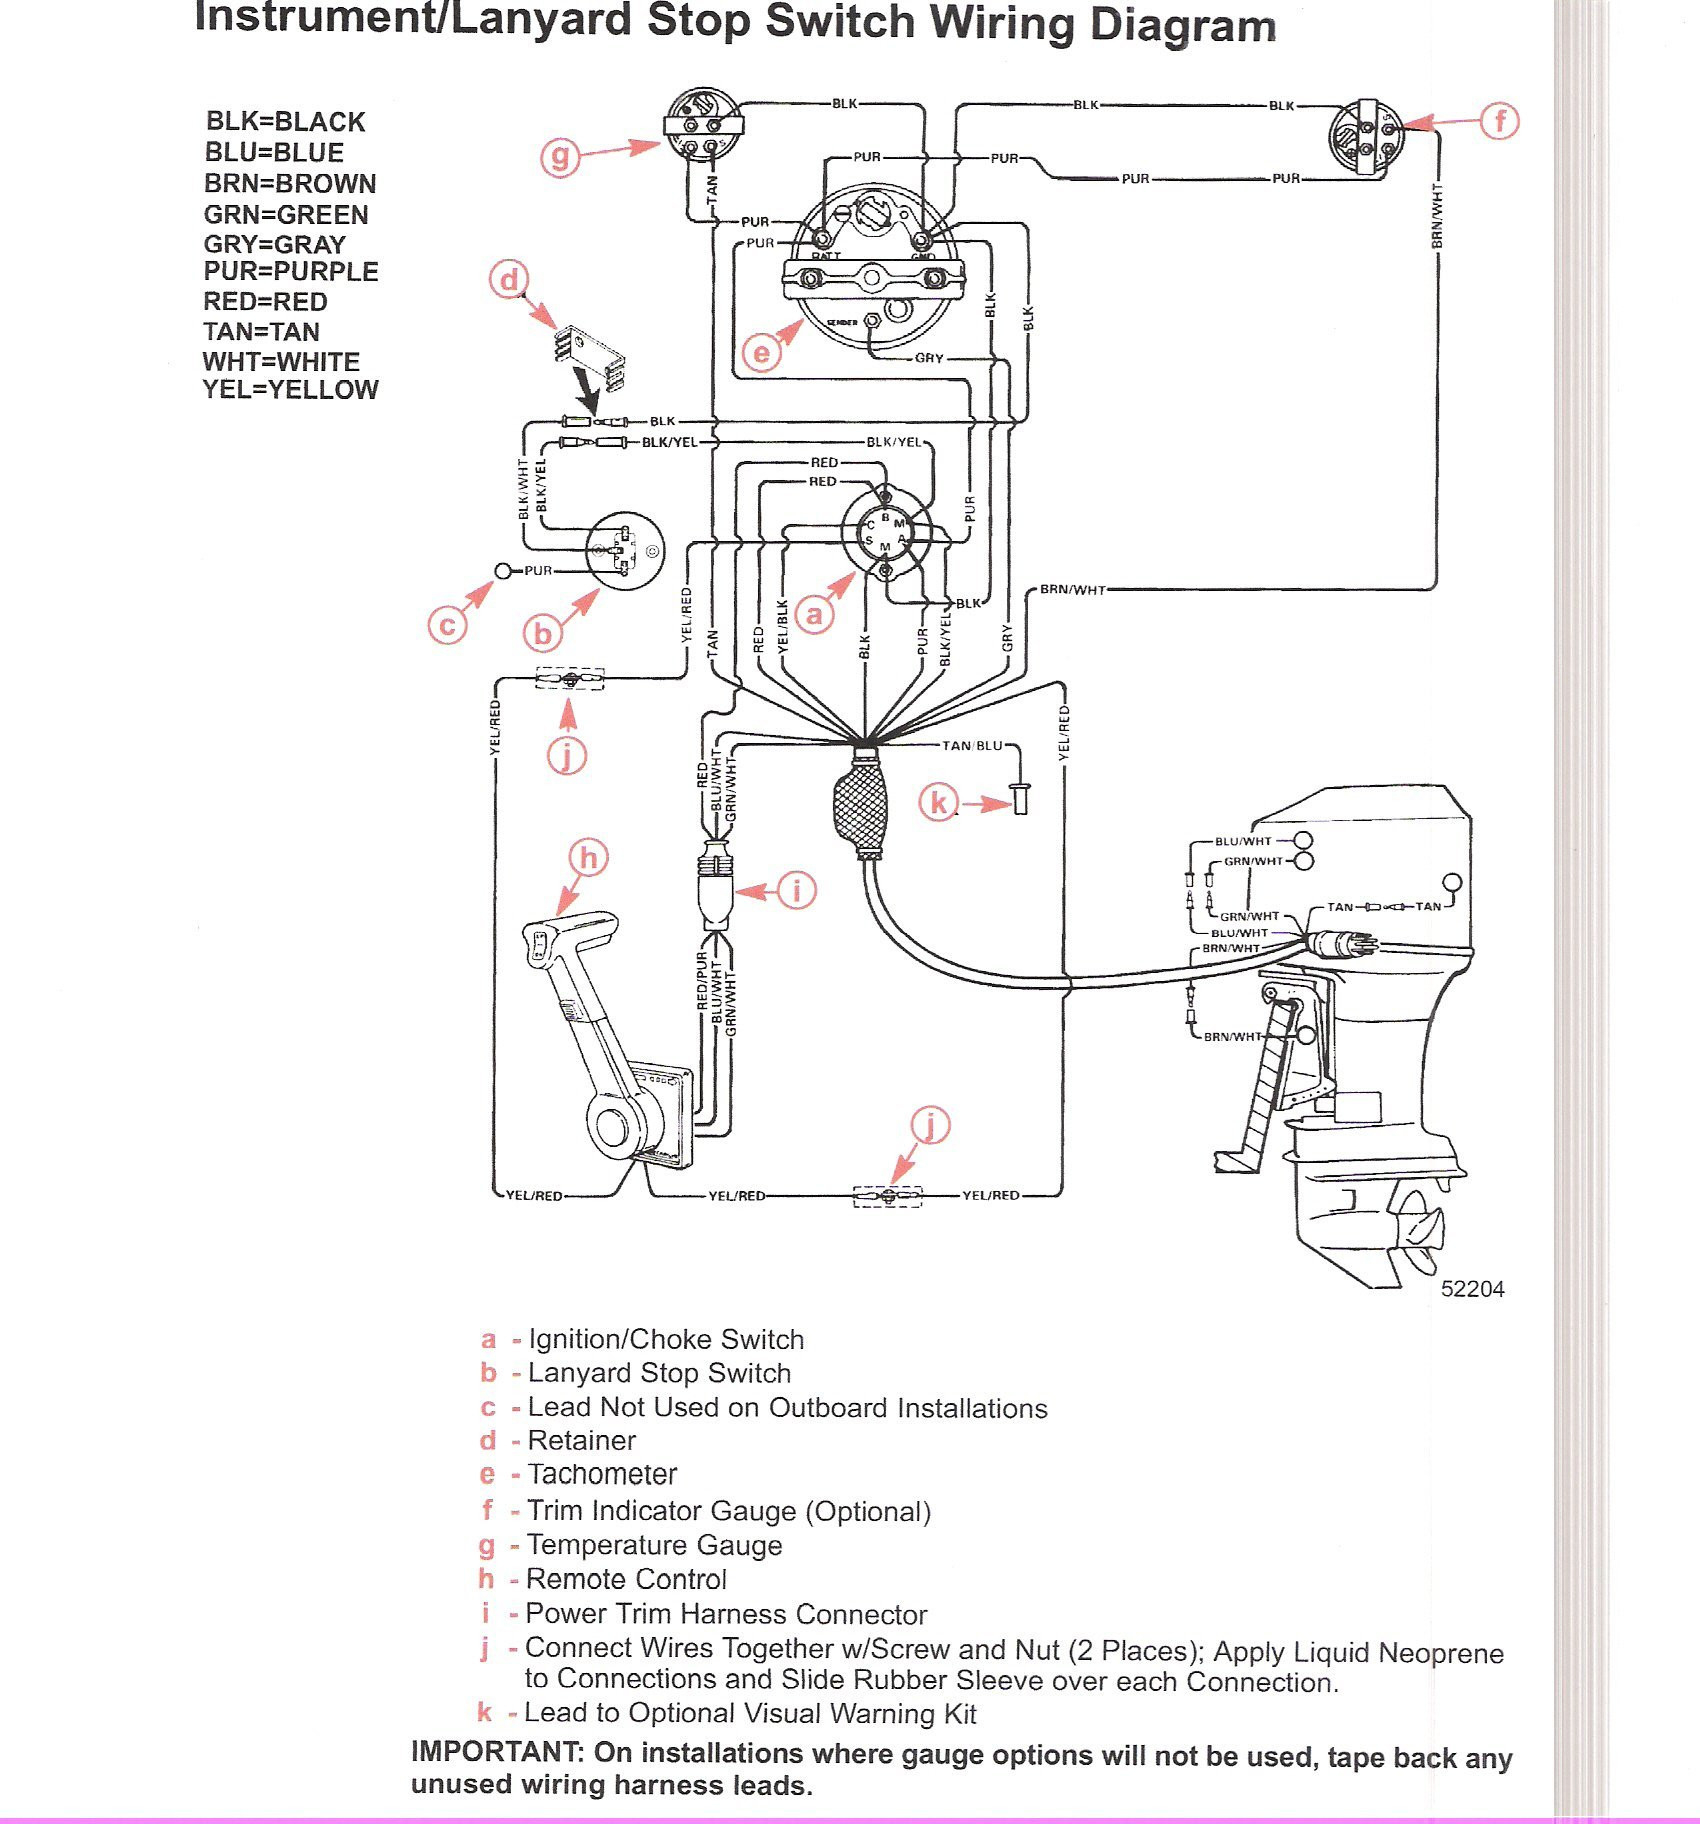 Ridgid 300 Switch Wiring Diagram Collection Wiring